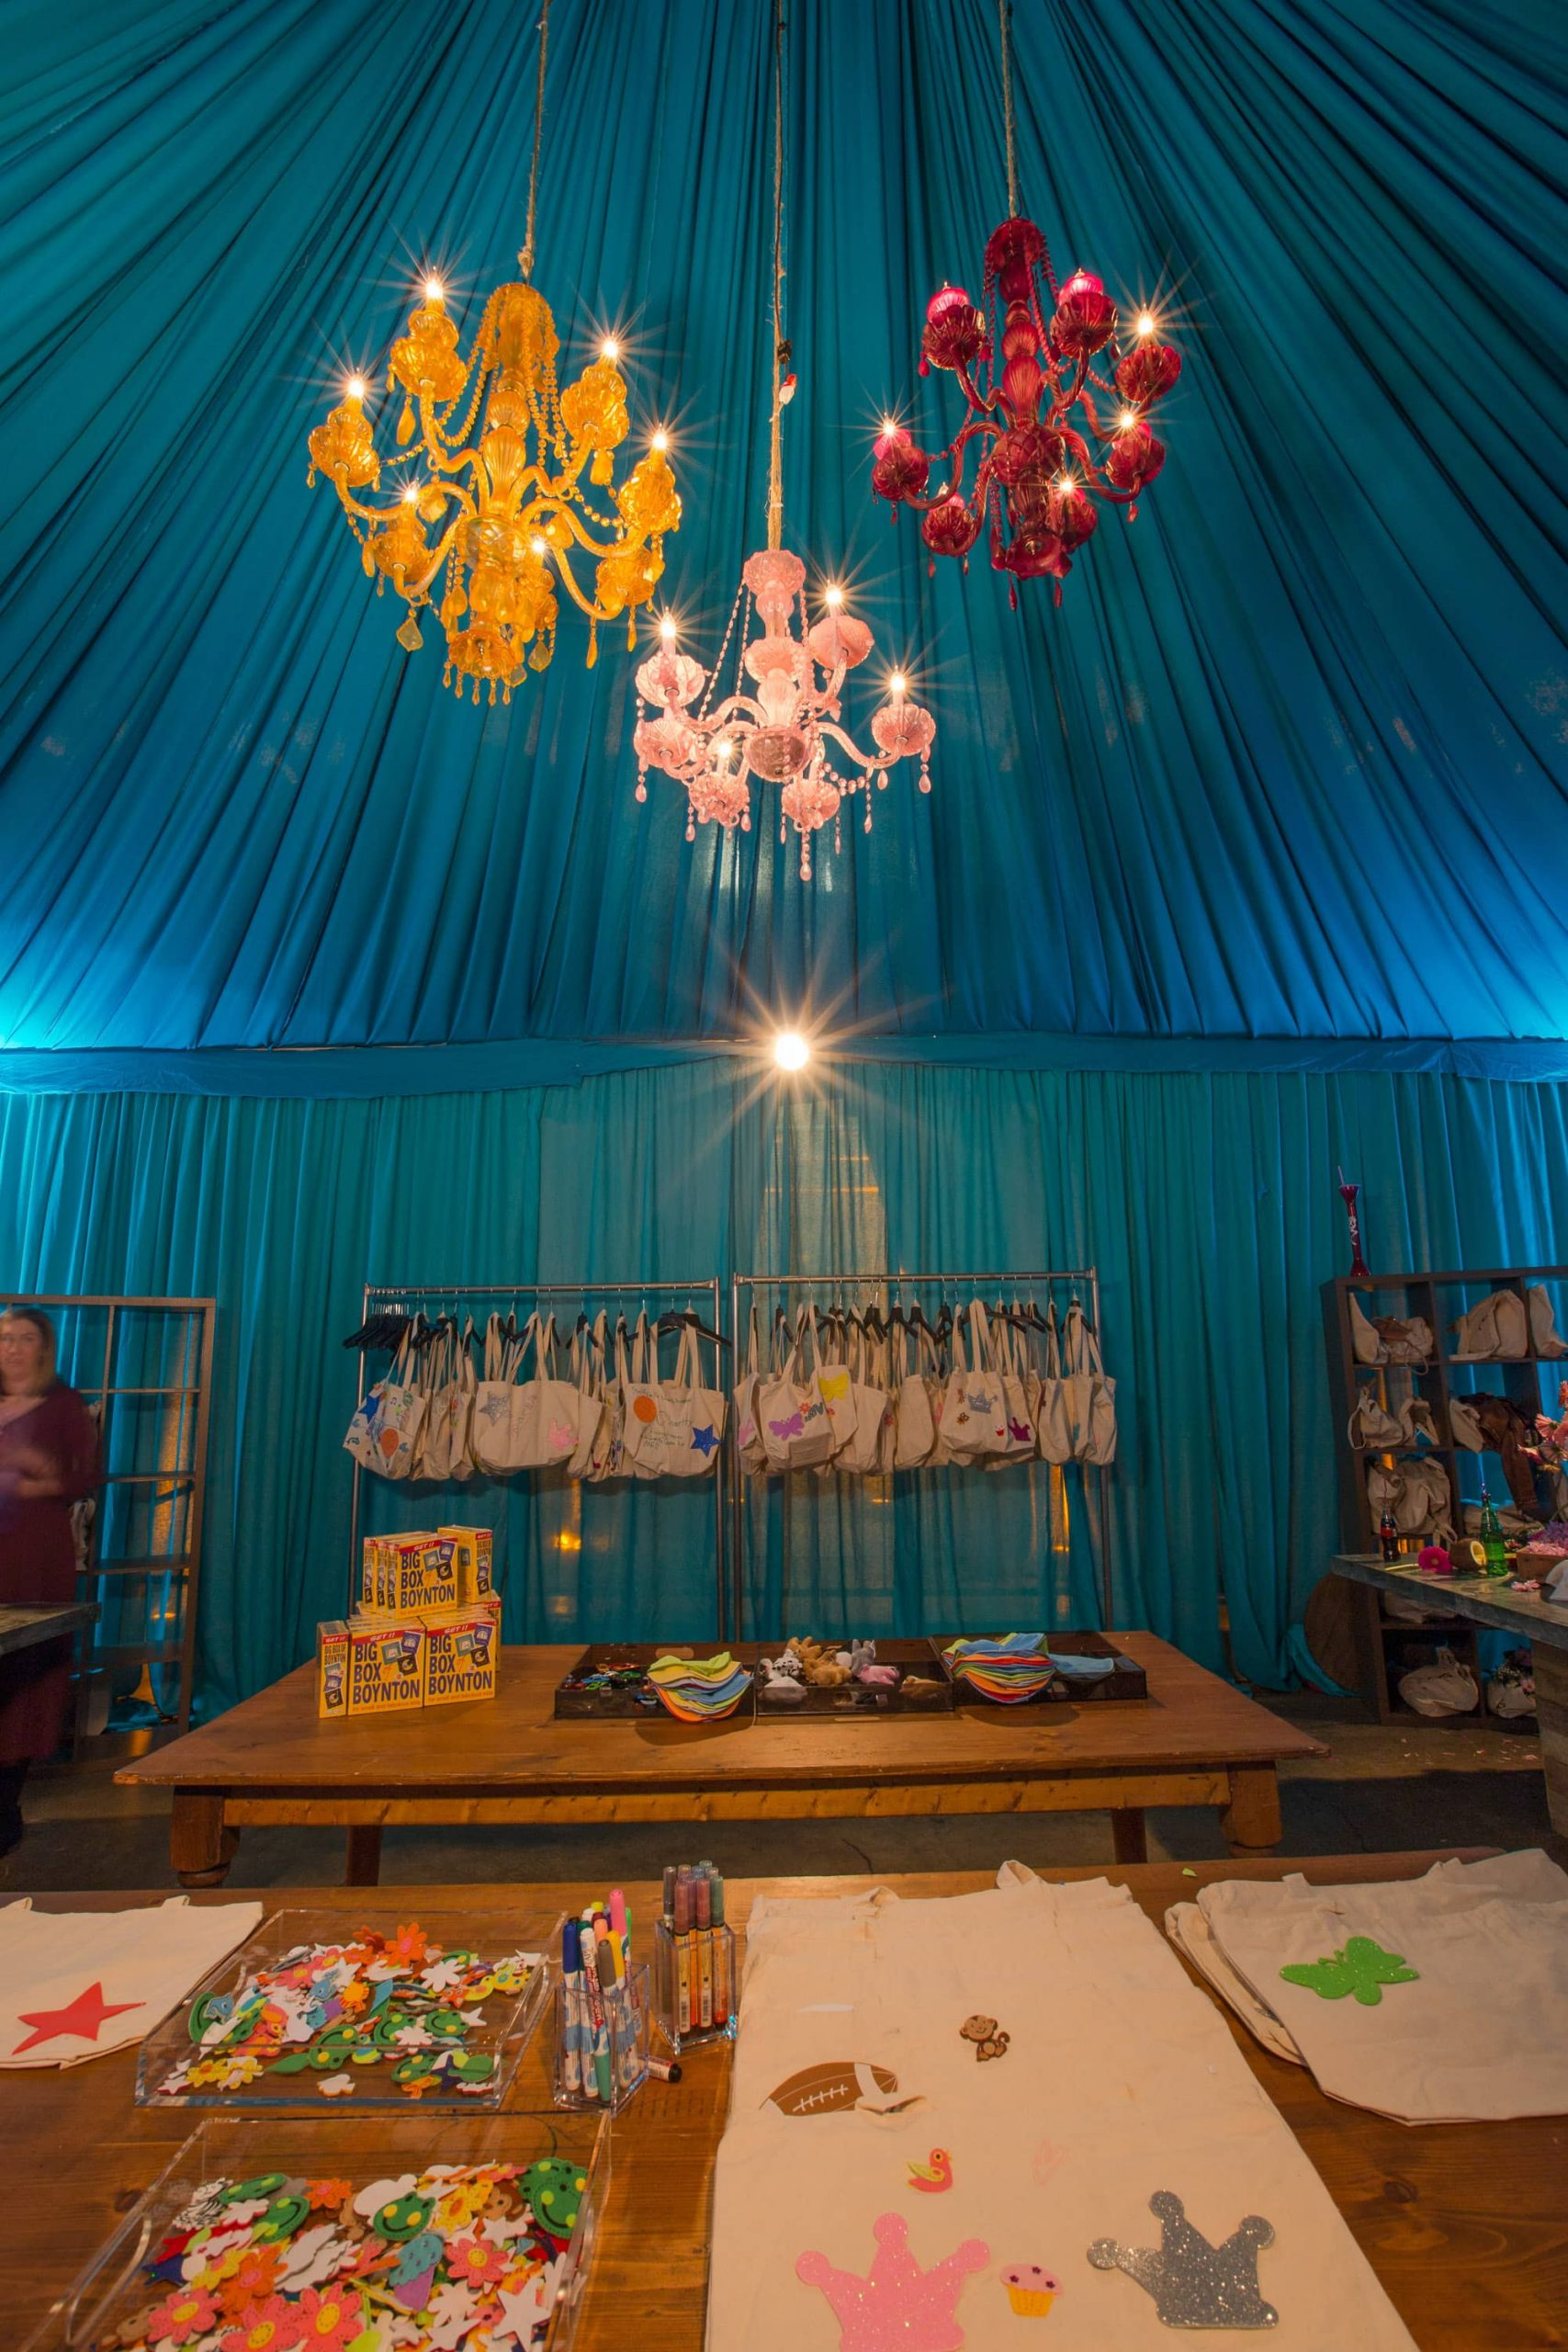 DIY canvas tote station at this food festival and souk-inspired bat mitzvah in DC | Photo by Luis Zepeda